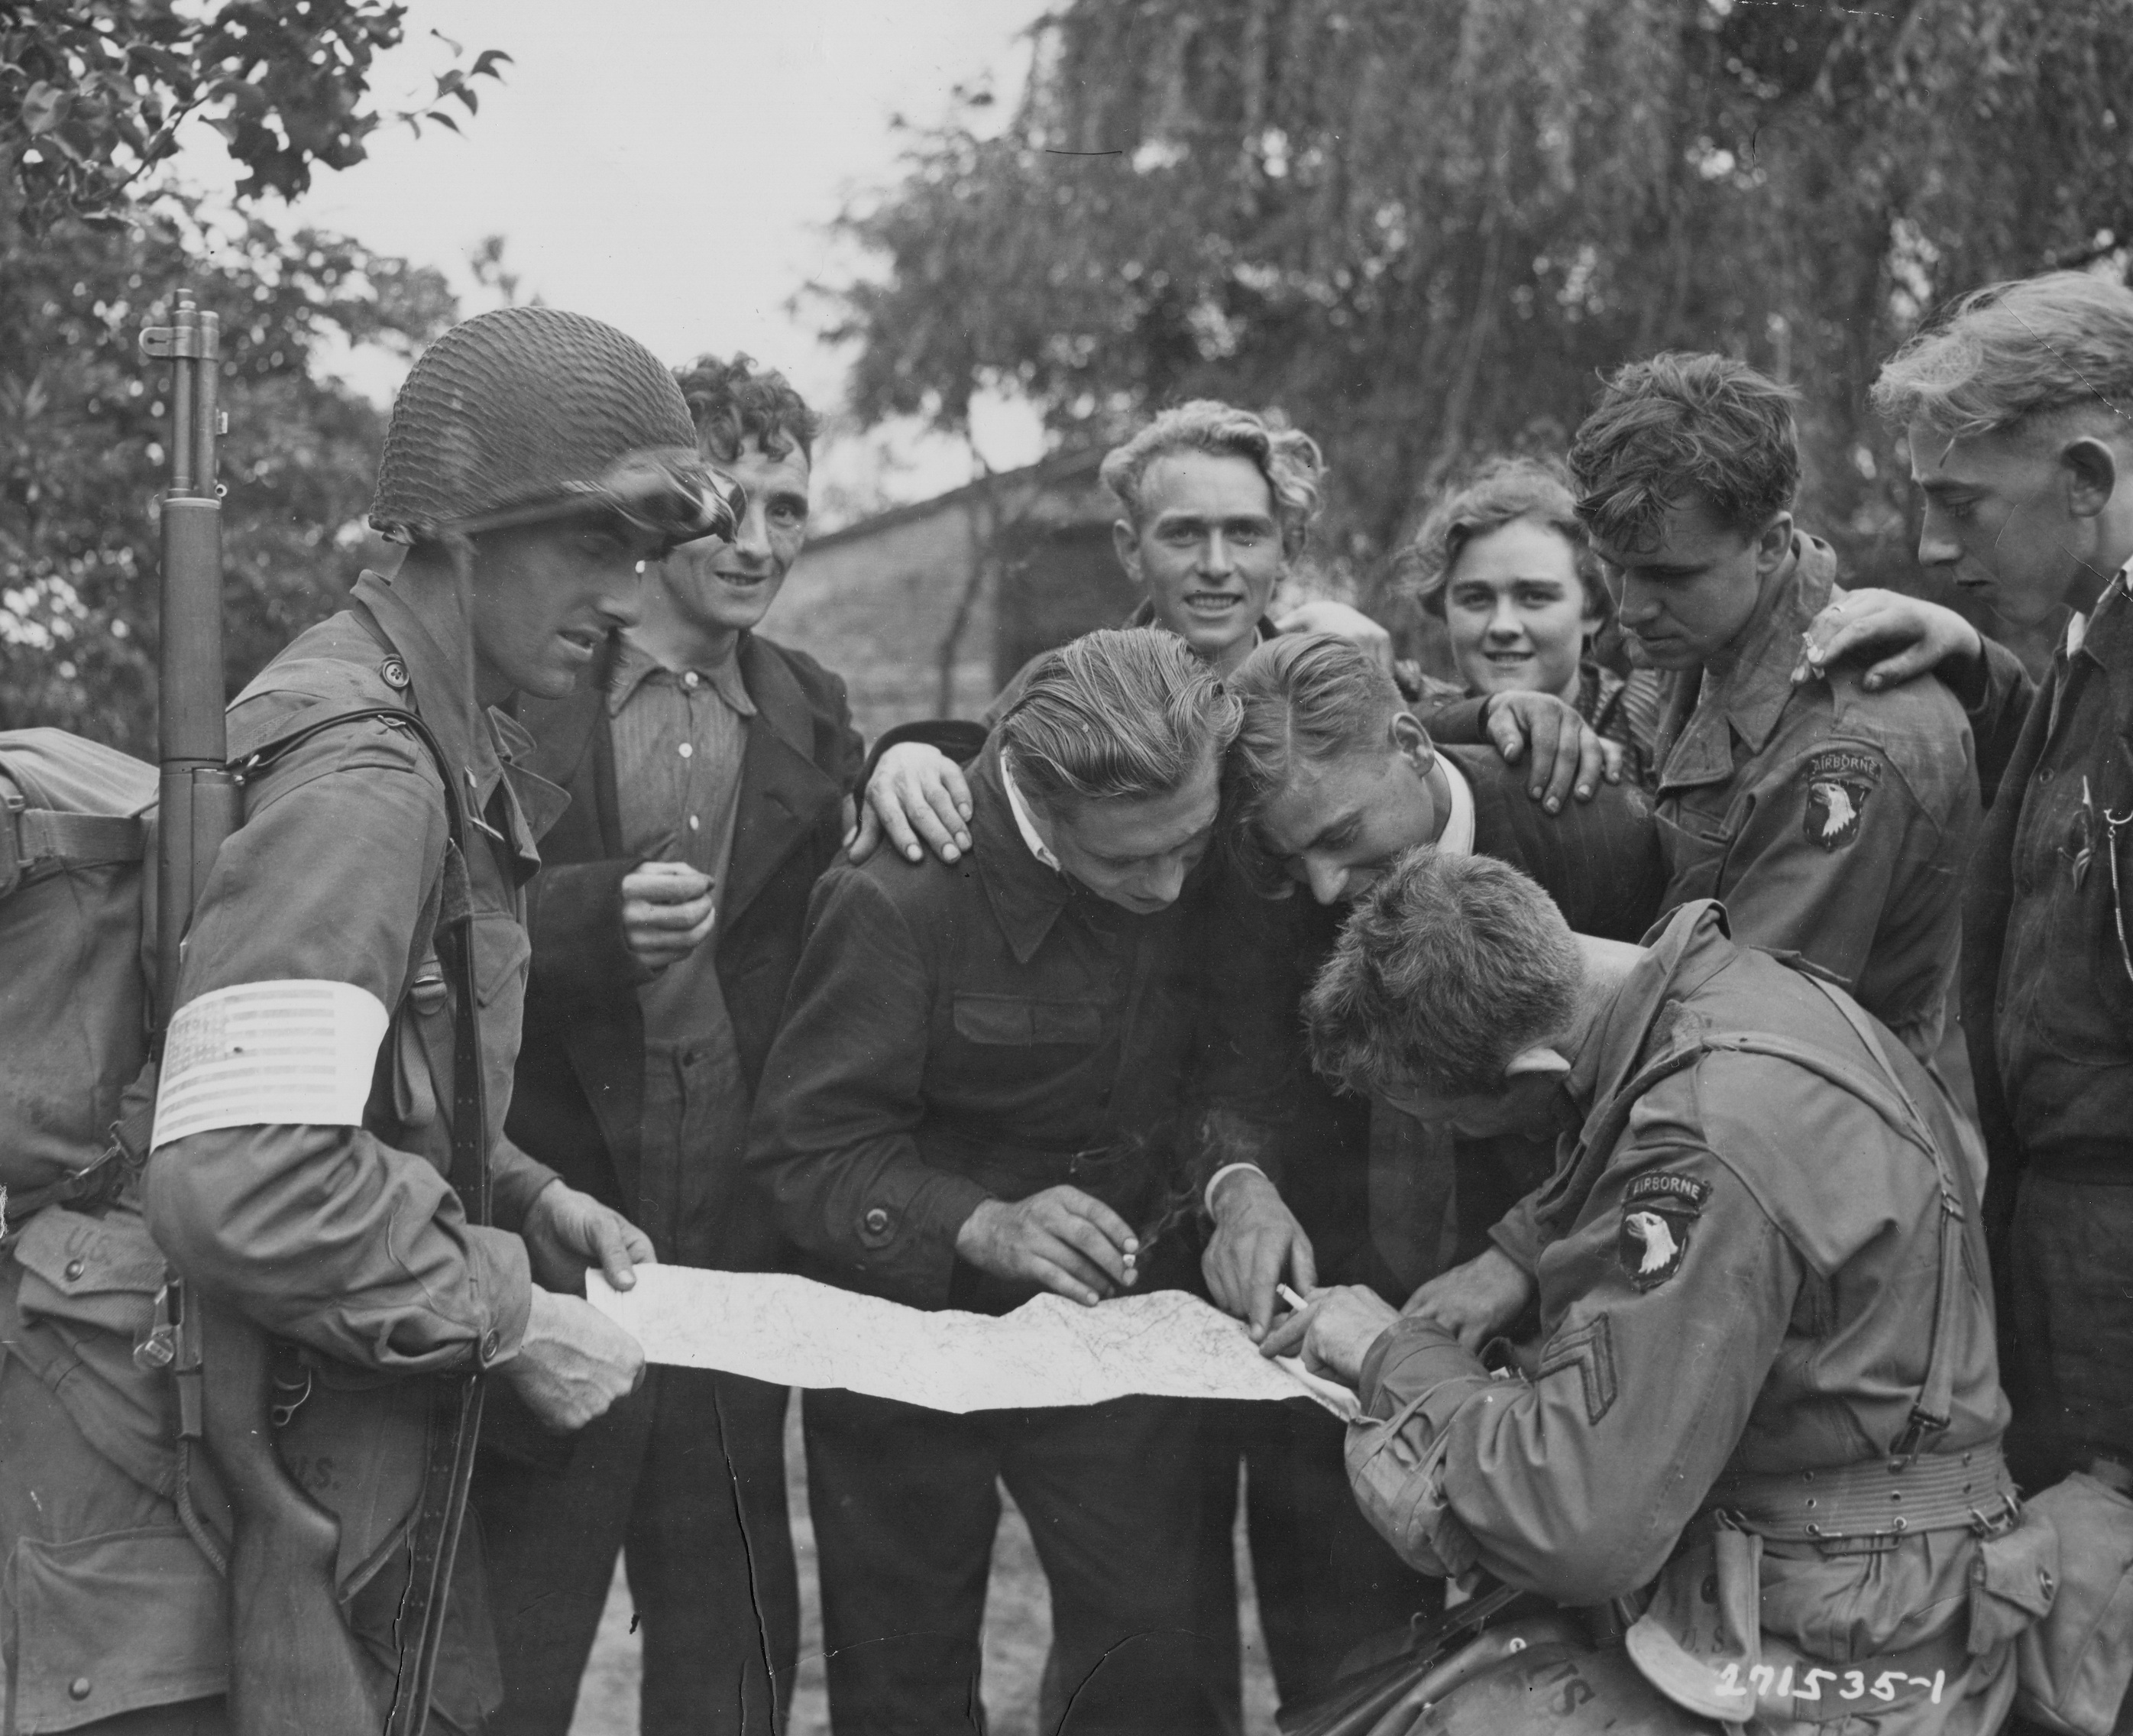 Hells Highway (The 101st Airborne Division)